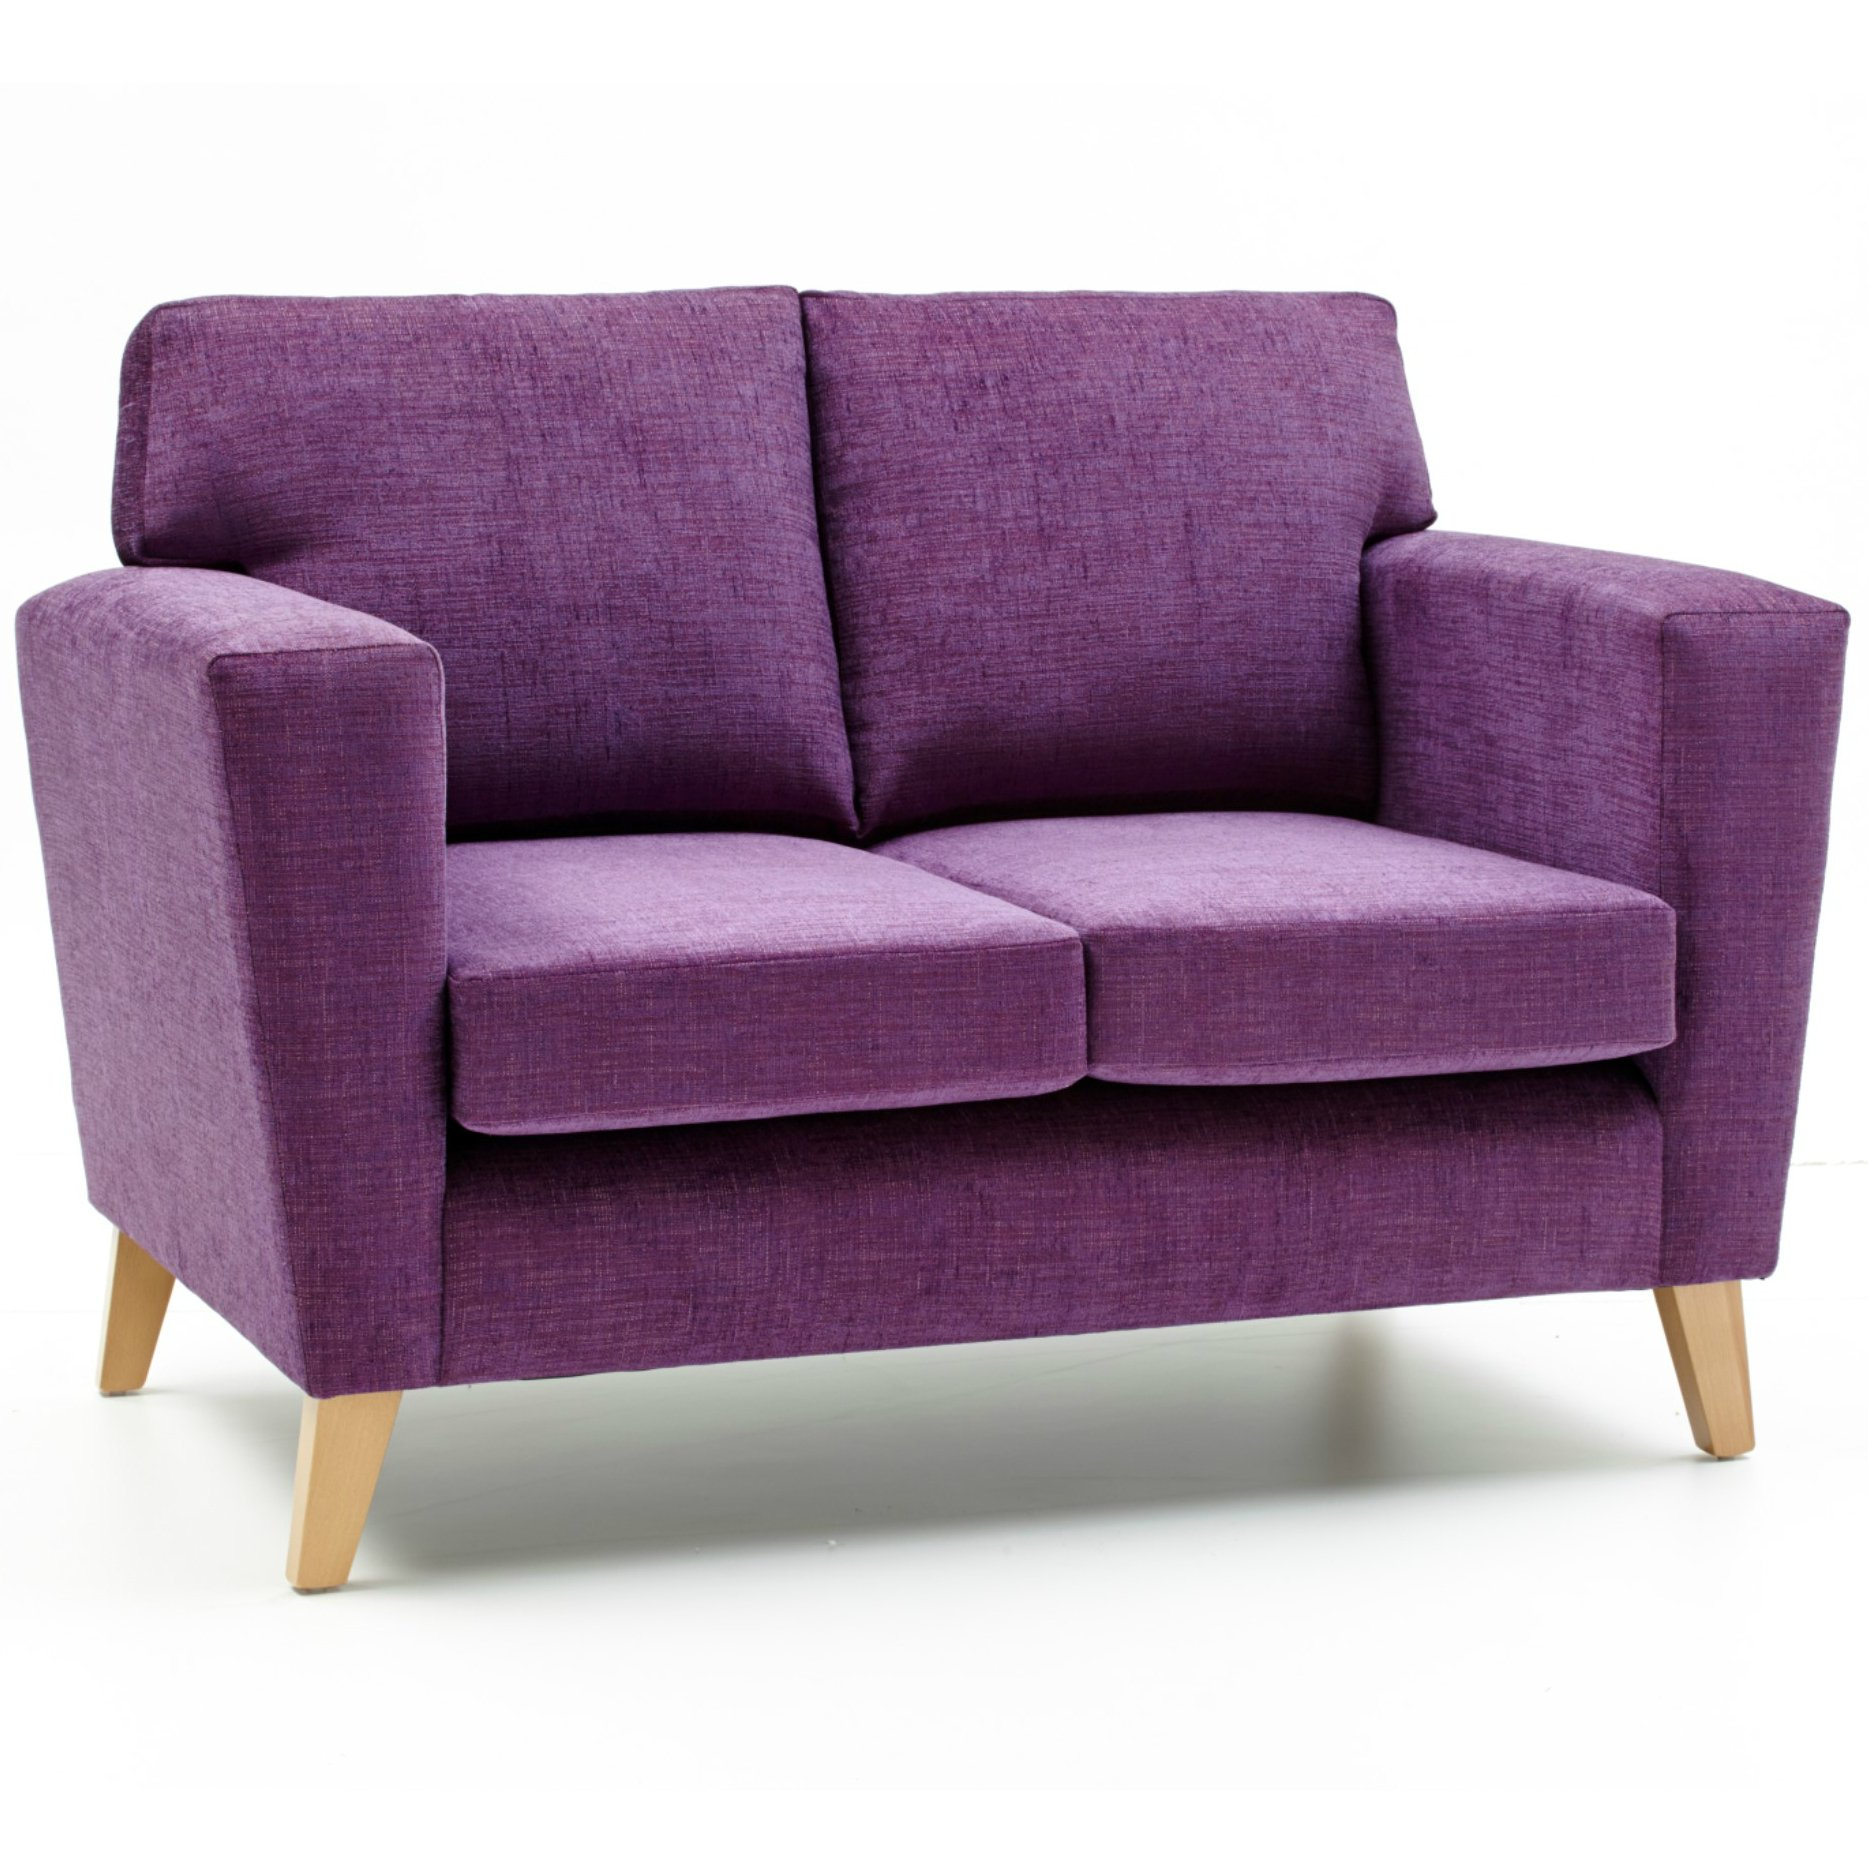 Aralto 2 Seater Sofa